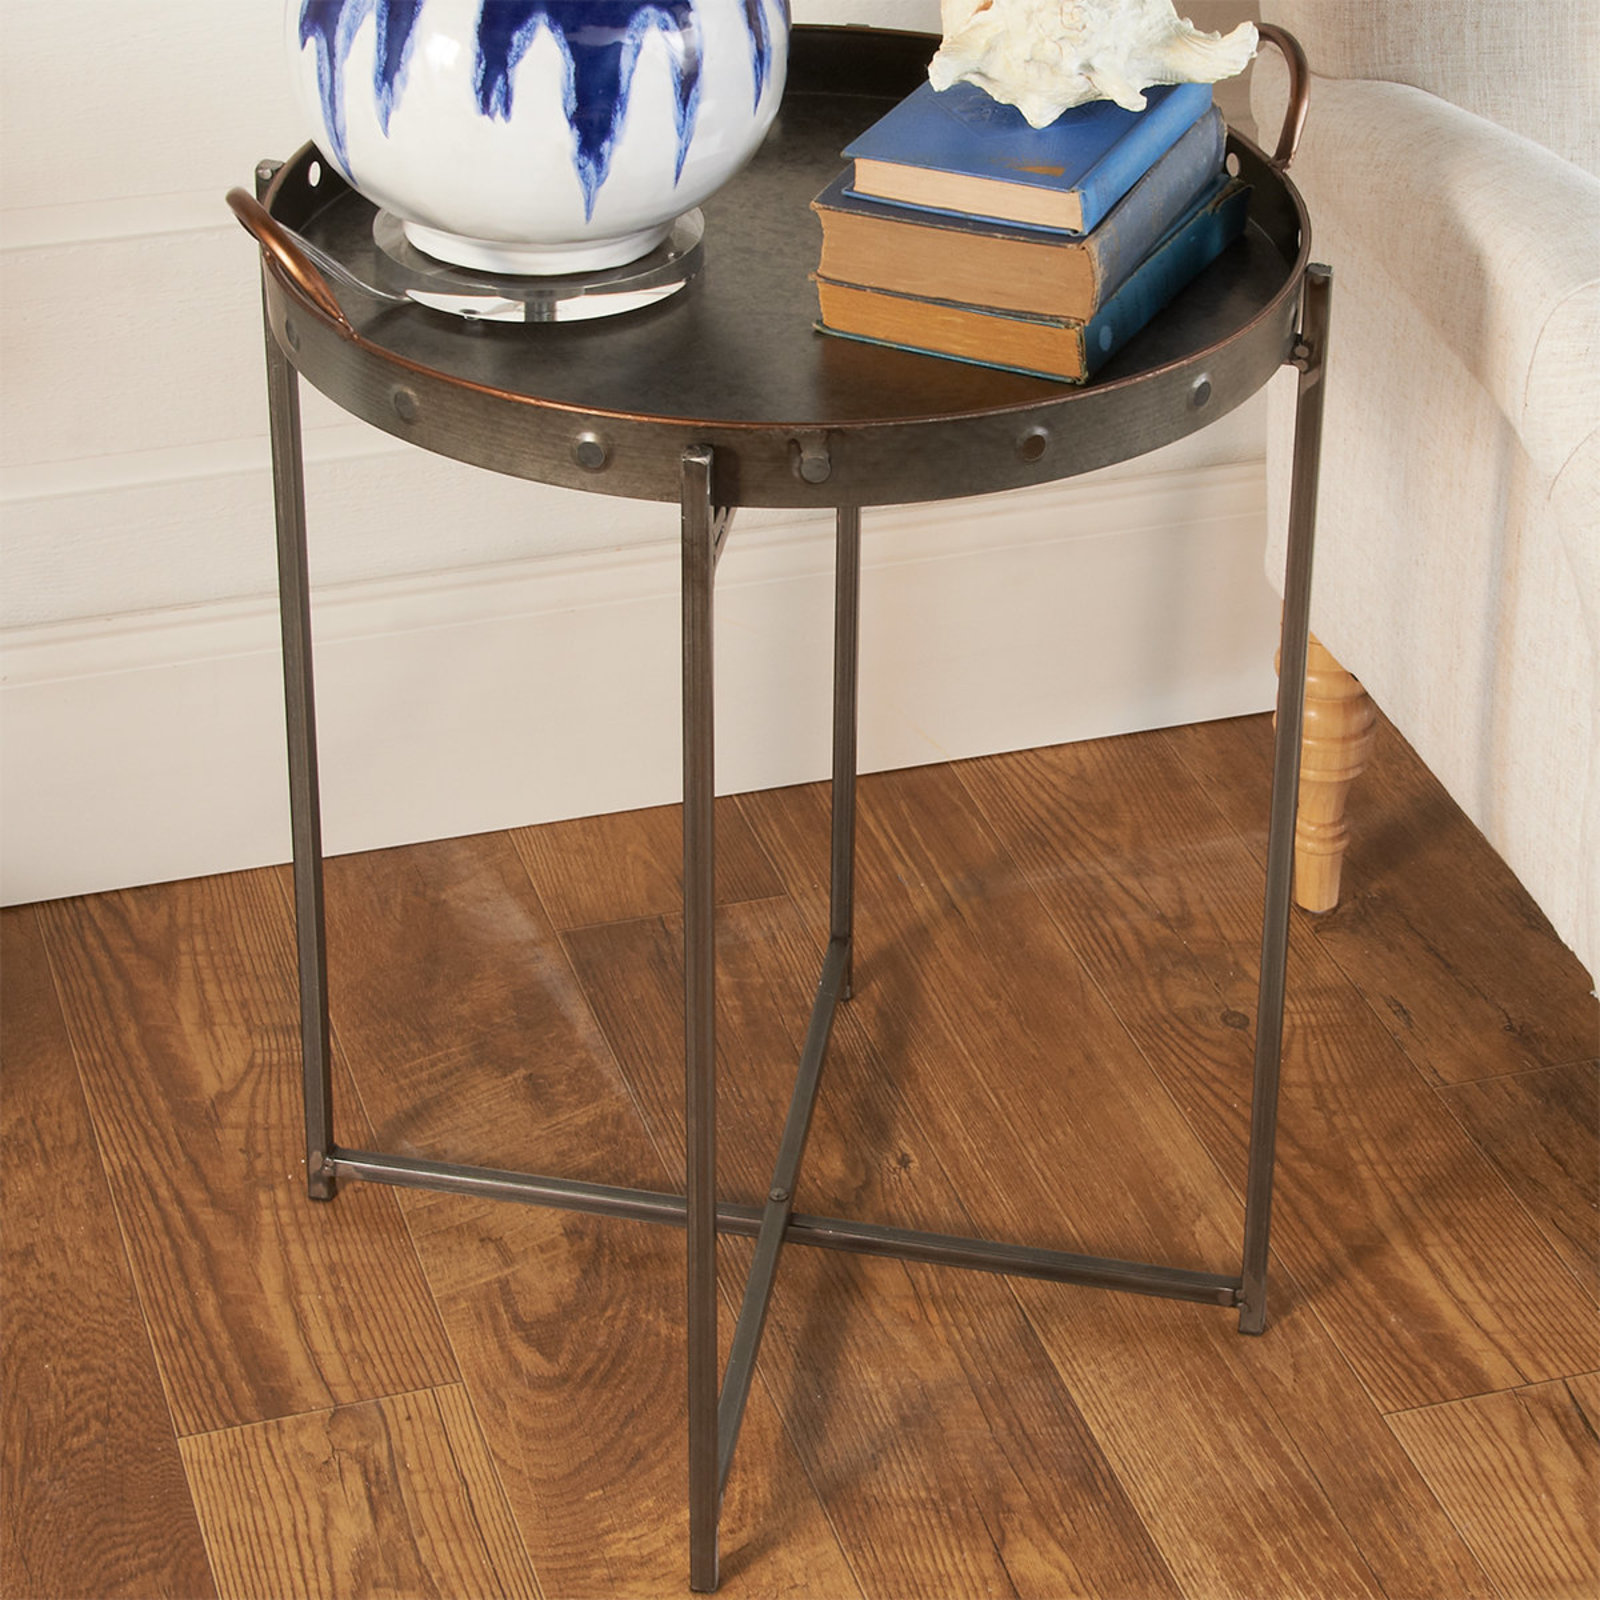 galvanized tray top accent table shades light metal bronze barn sliding door hardware coffee bistro tablecloths round ashley furniture sectional couch queen frame bedside with